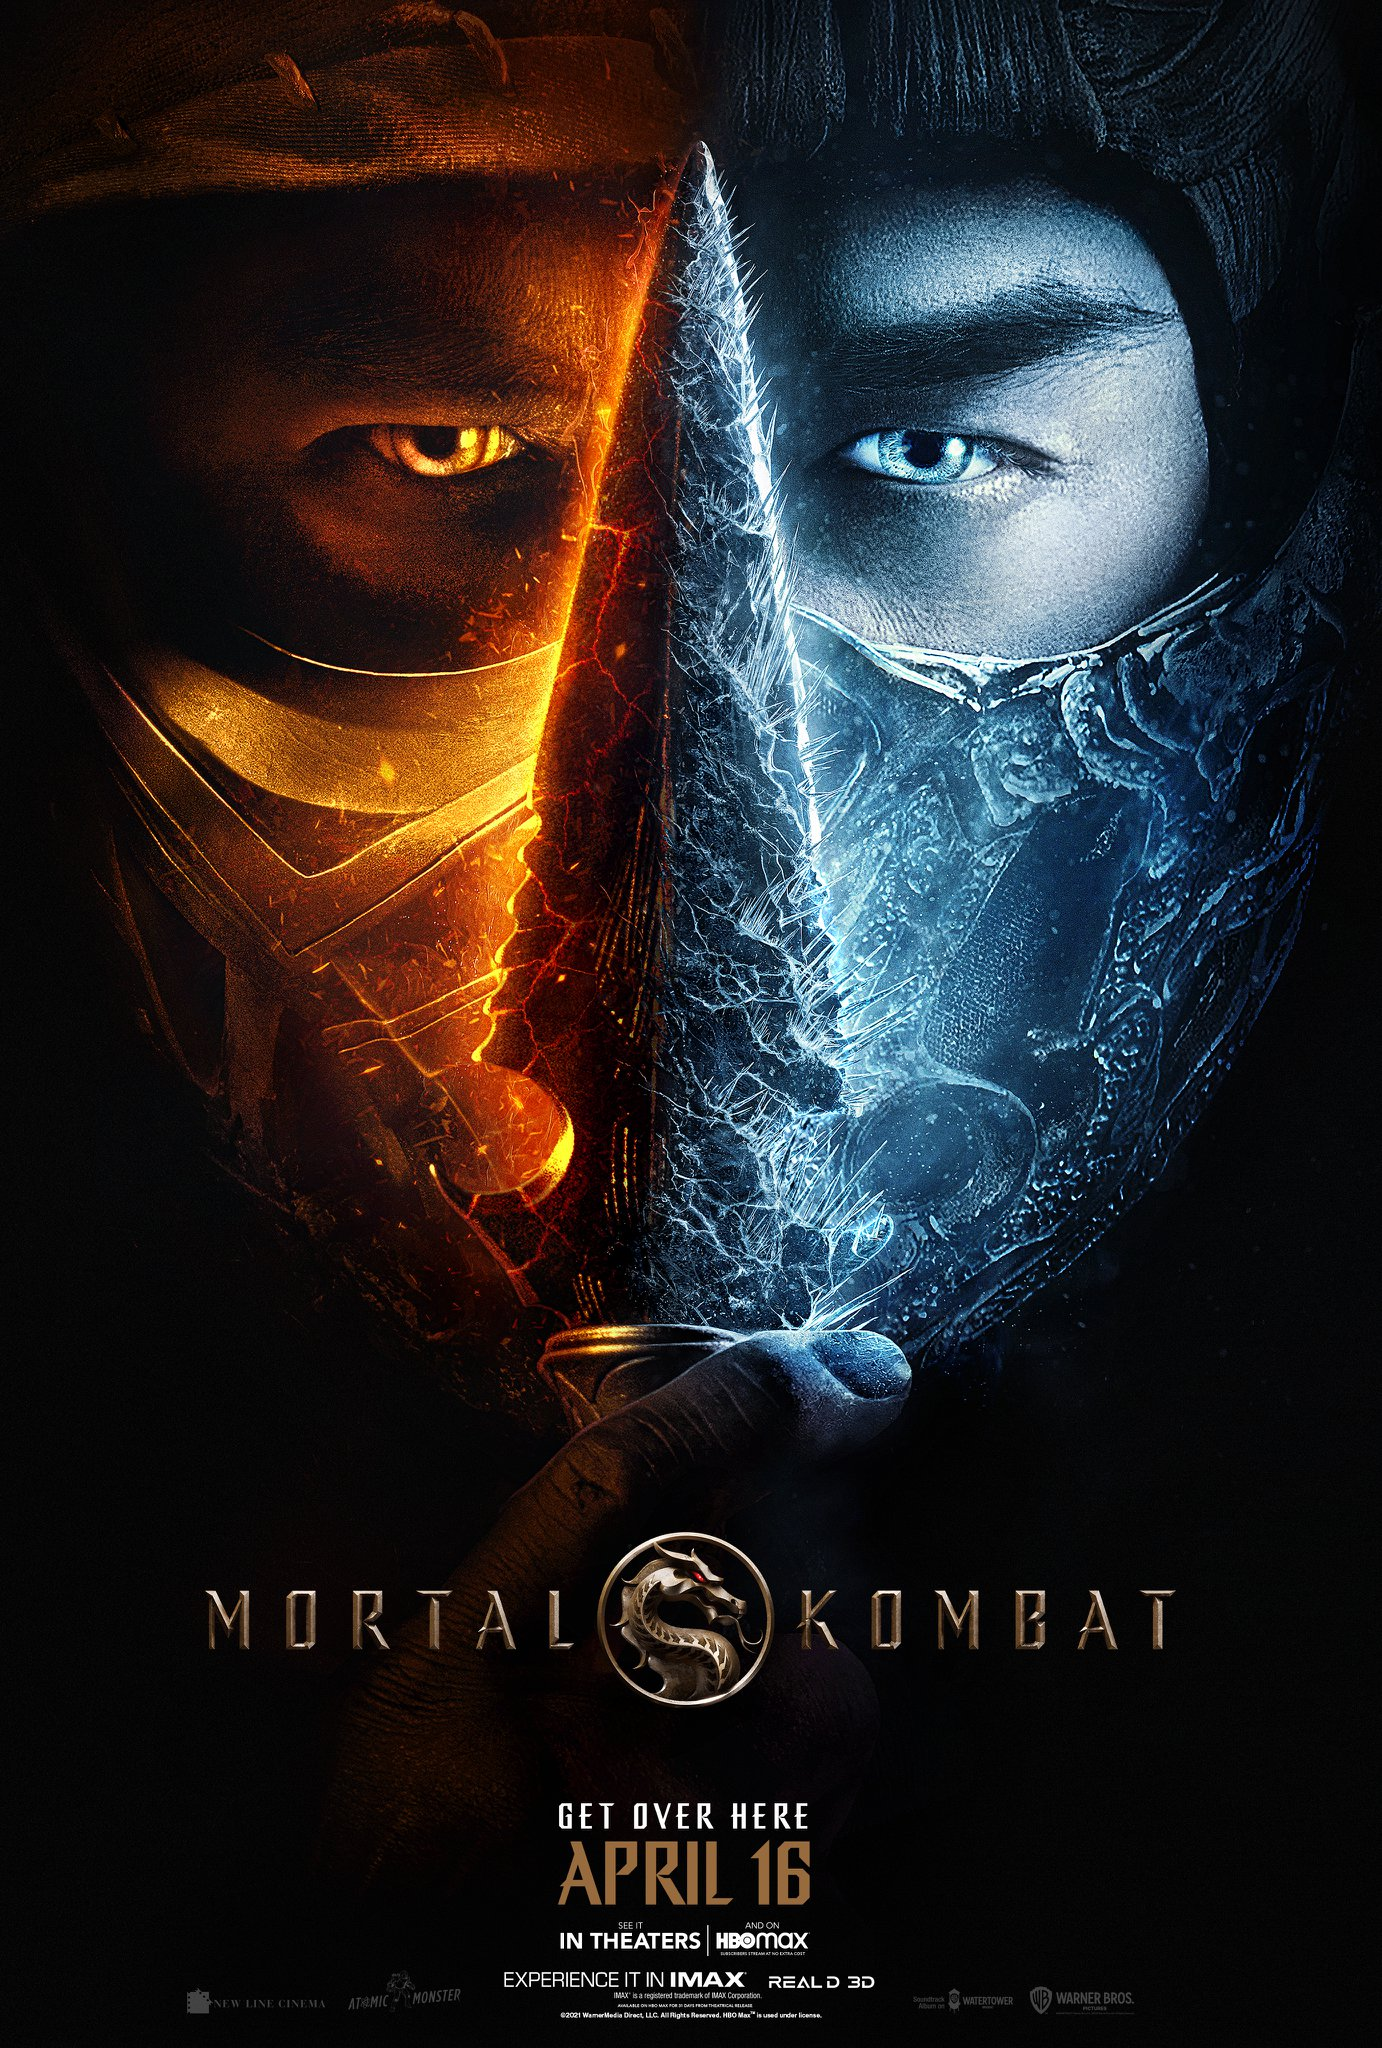 The official movie poster for the 2021 Mortal Kombat film, featuring an image that is half the face of Scorpion and half the face of Sub-Zero, divided in the center by Scorpion's trademark spear-head, which is half covered in Sub-Zero's frost.